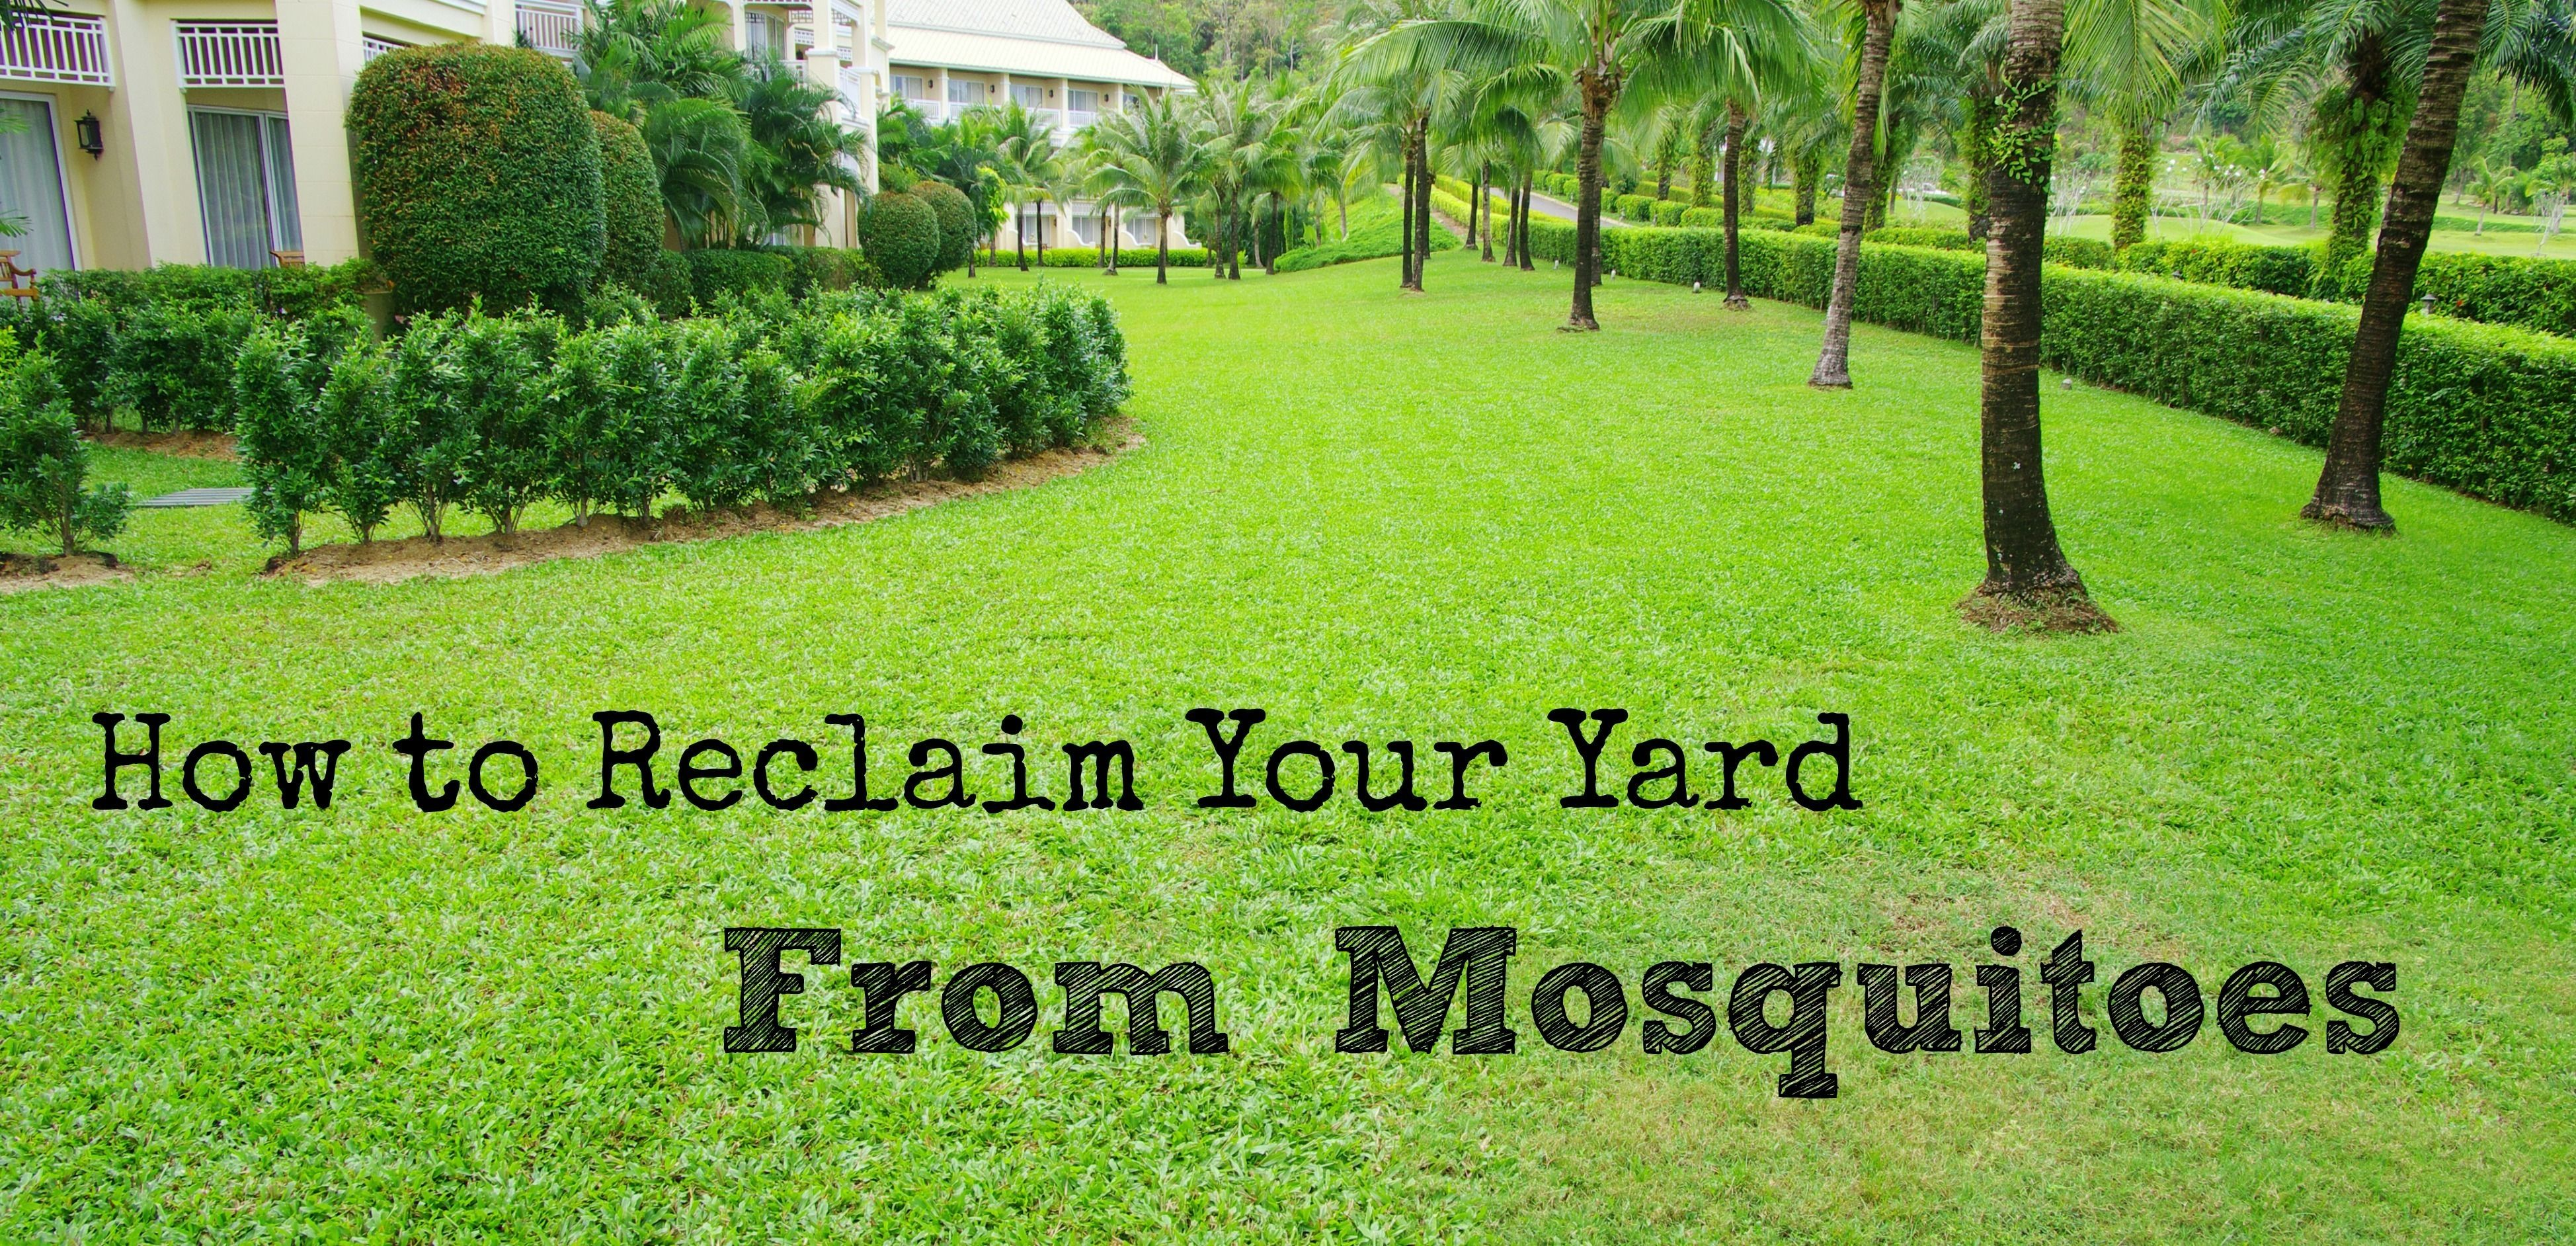 How To Reclaim Your Yard From Mosquitoes Home Decor Pinterest